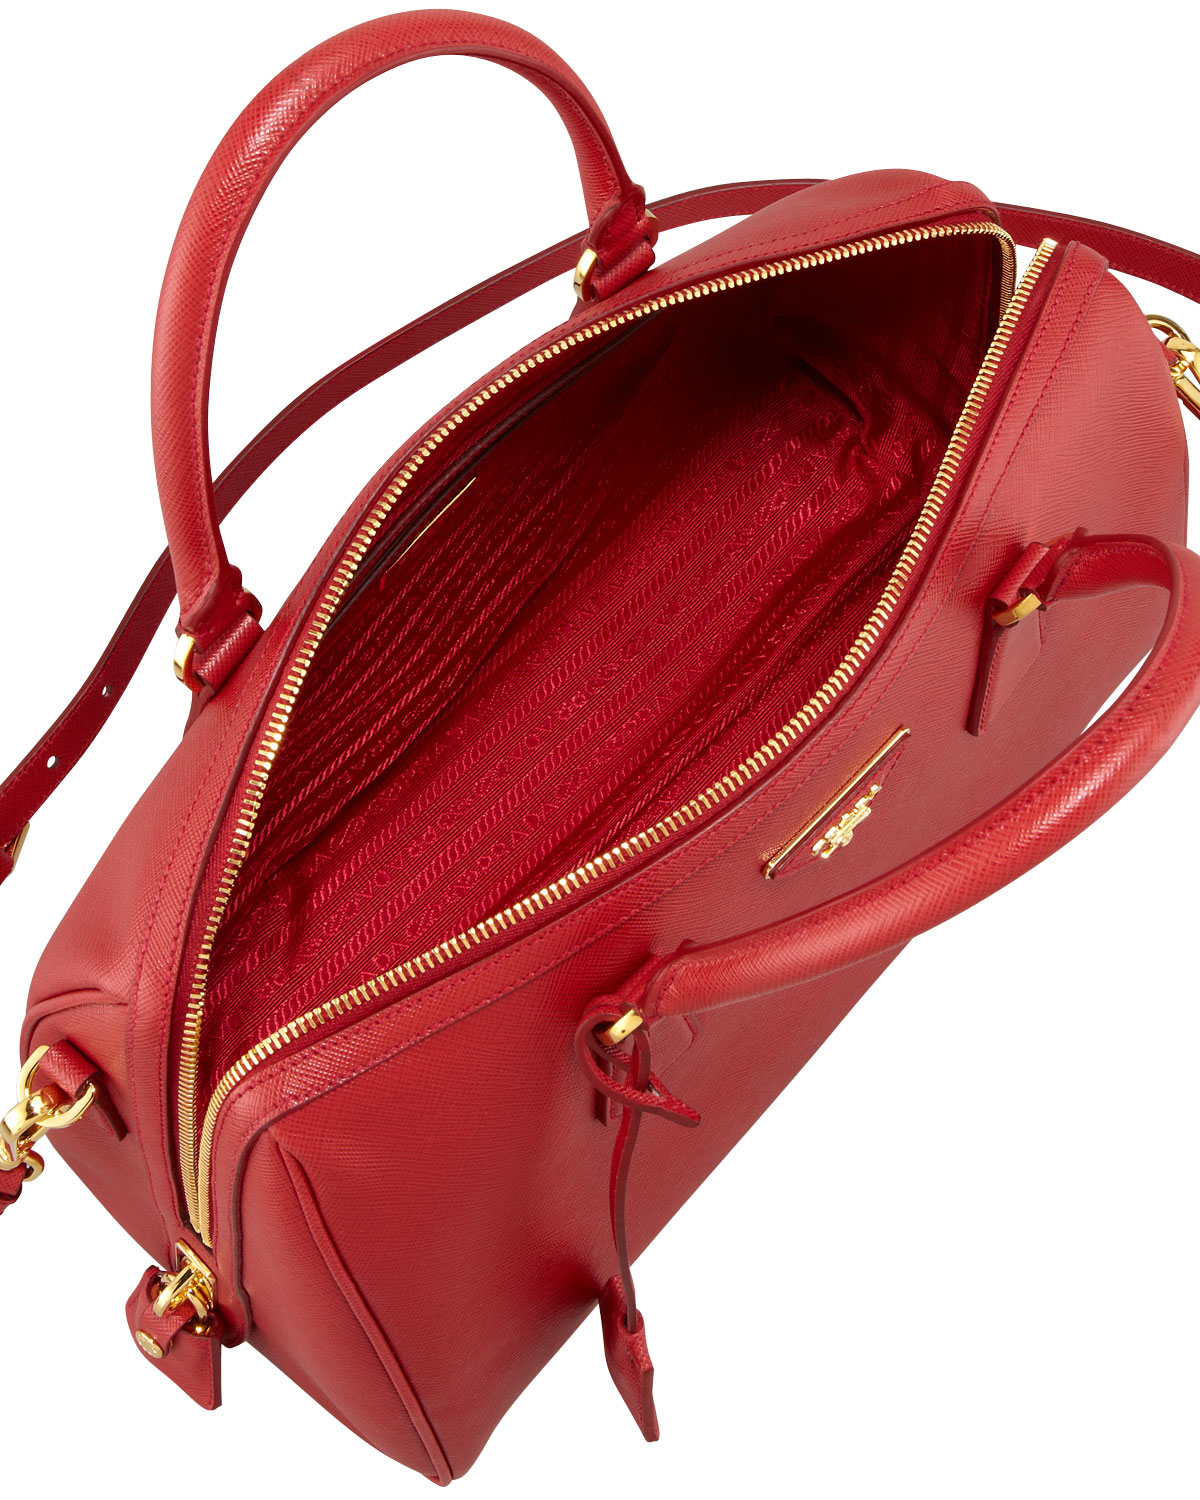 red leather prada bag